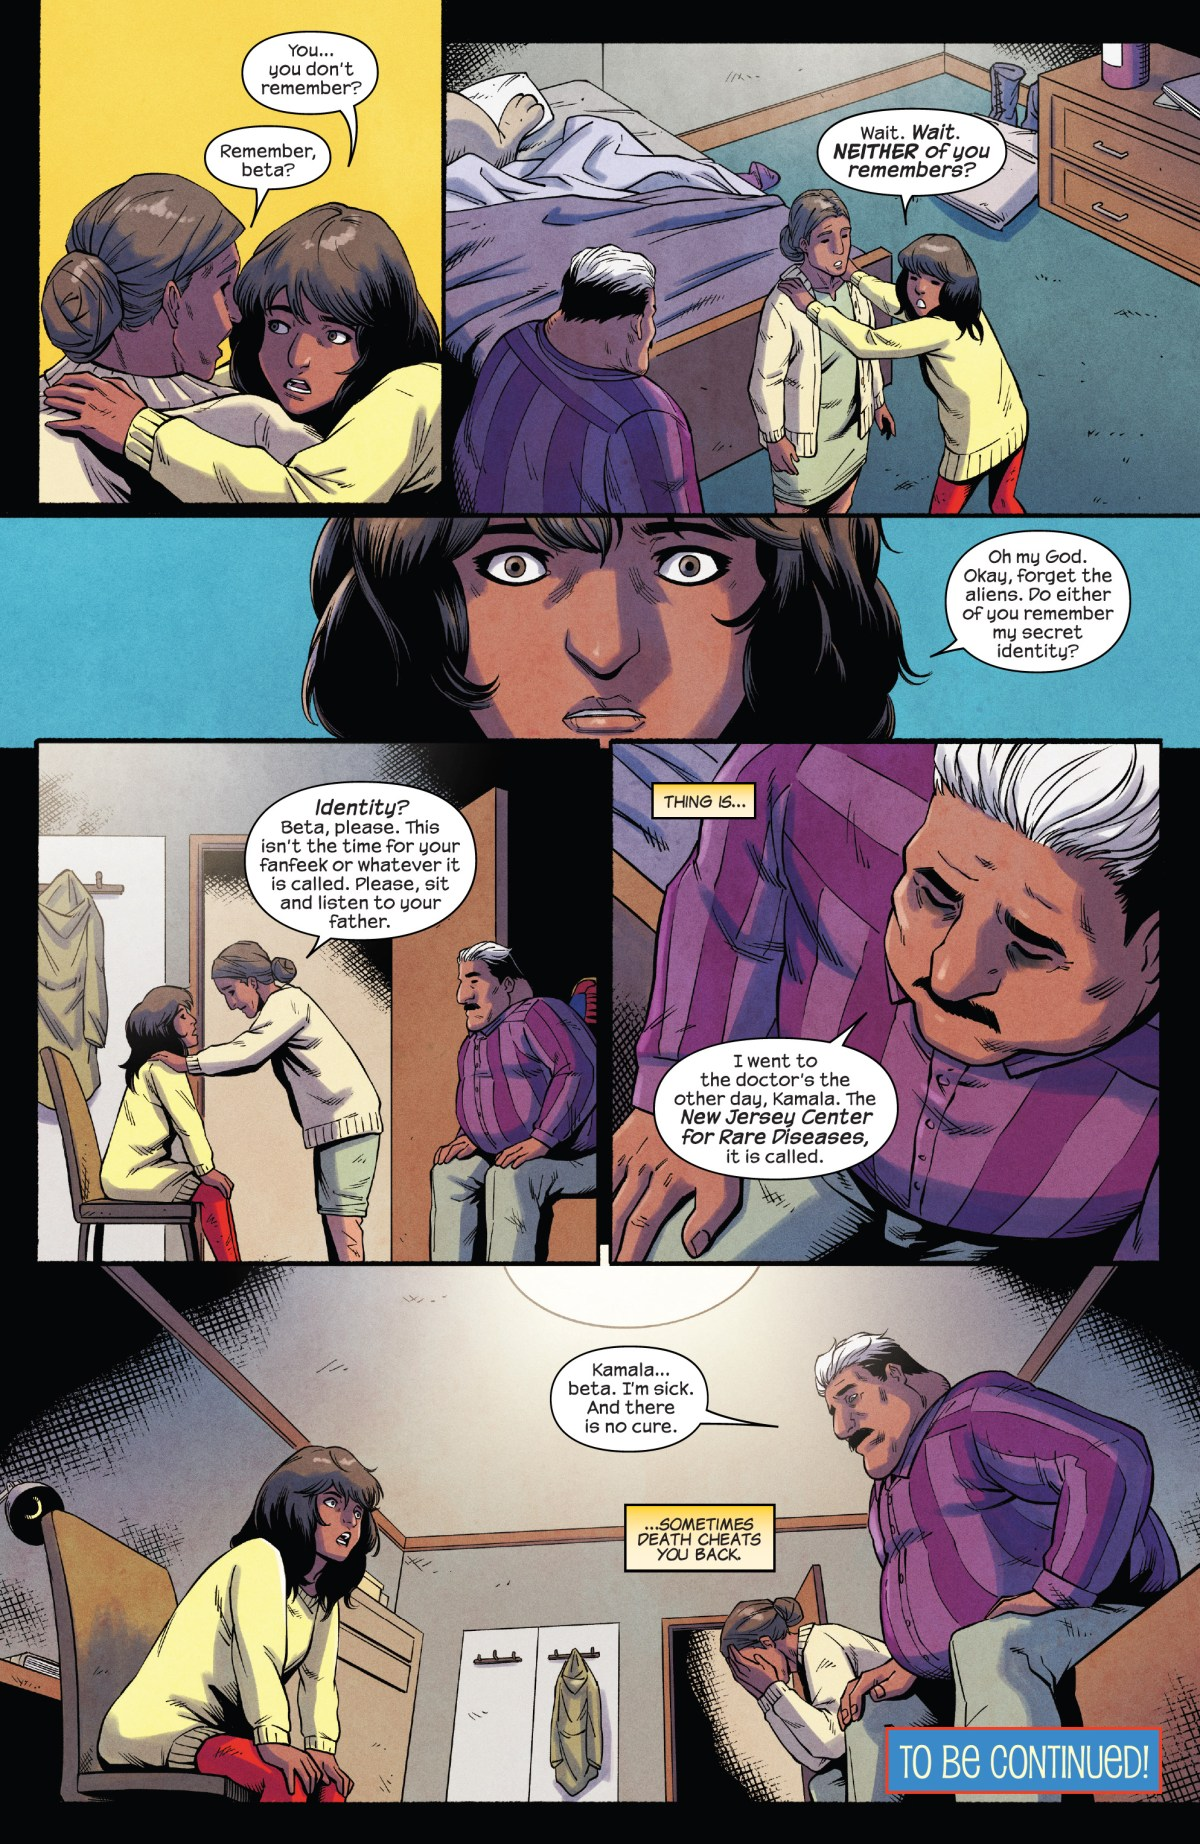 Kamala is shocked to discover that her parents' memories have been erased and her father is sick.